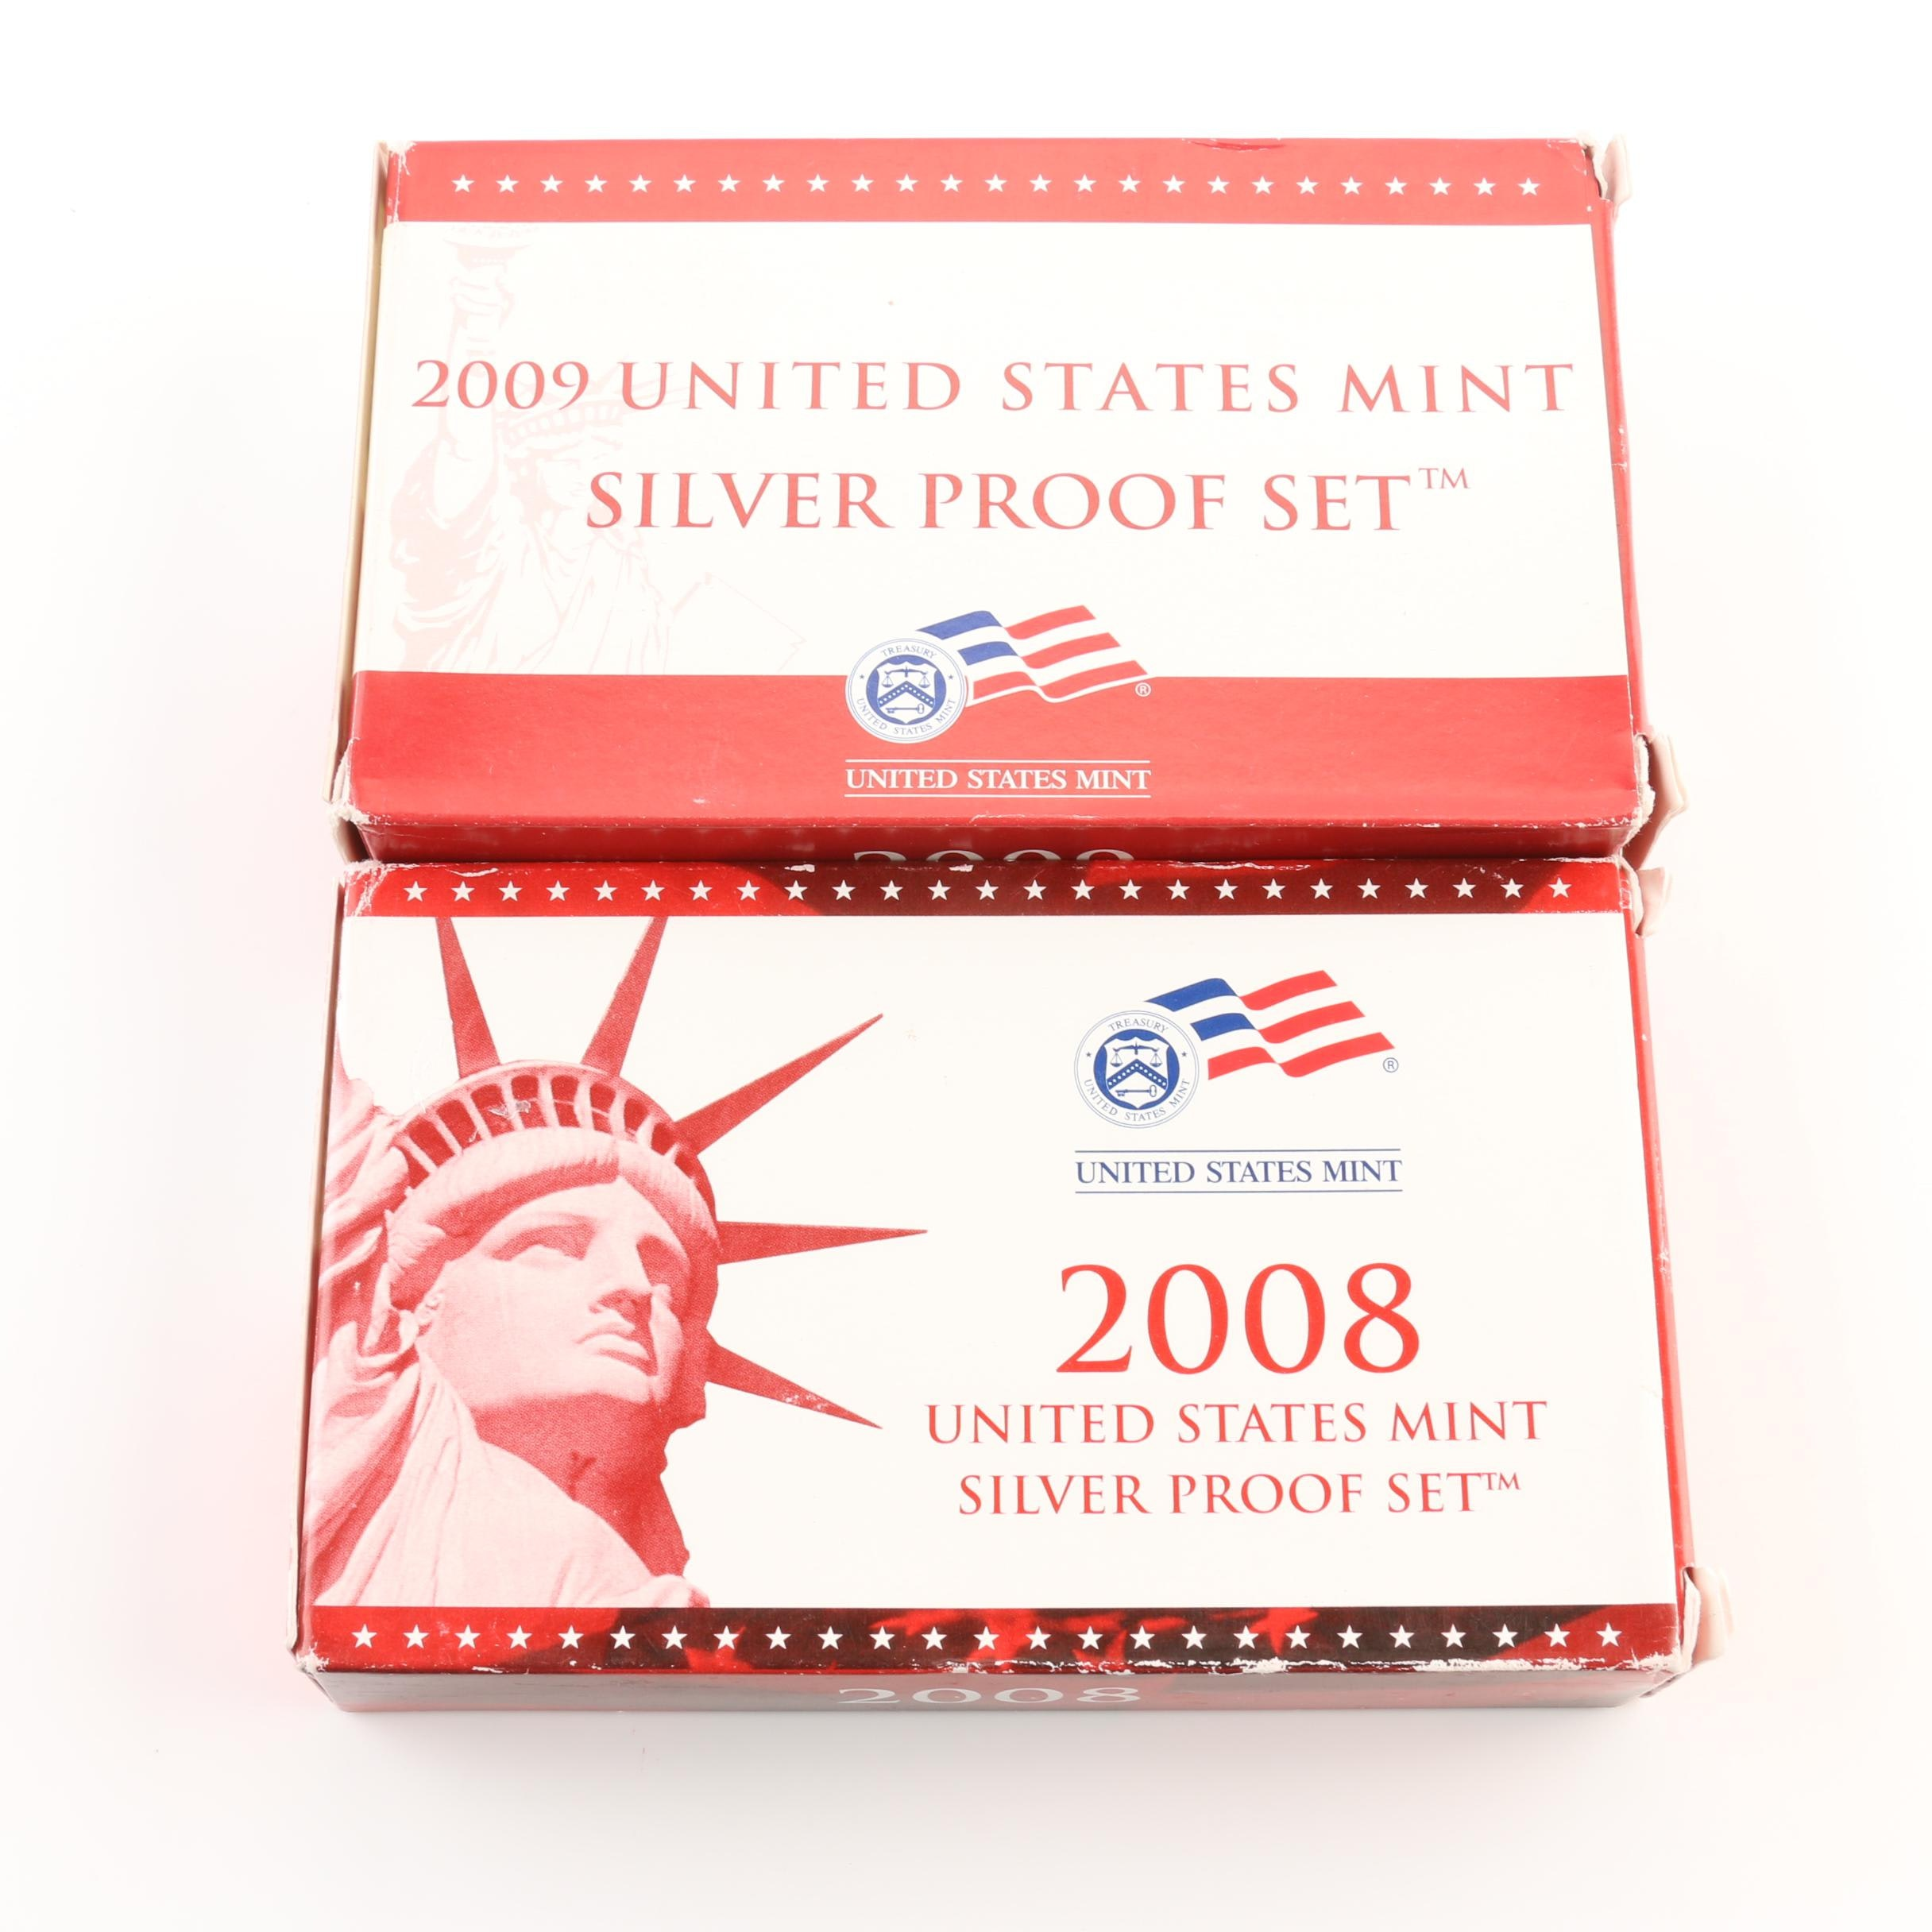 2008 and 2009 United States Mint Silver Proof Sets